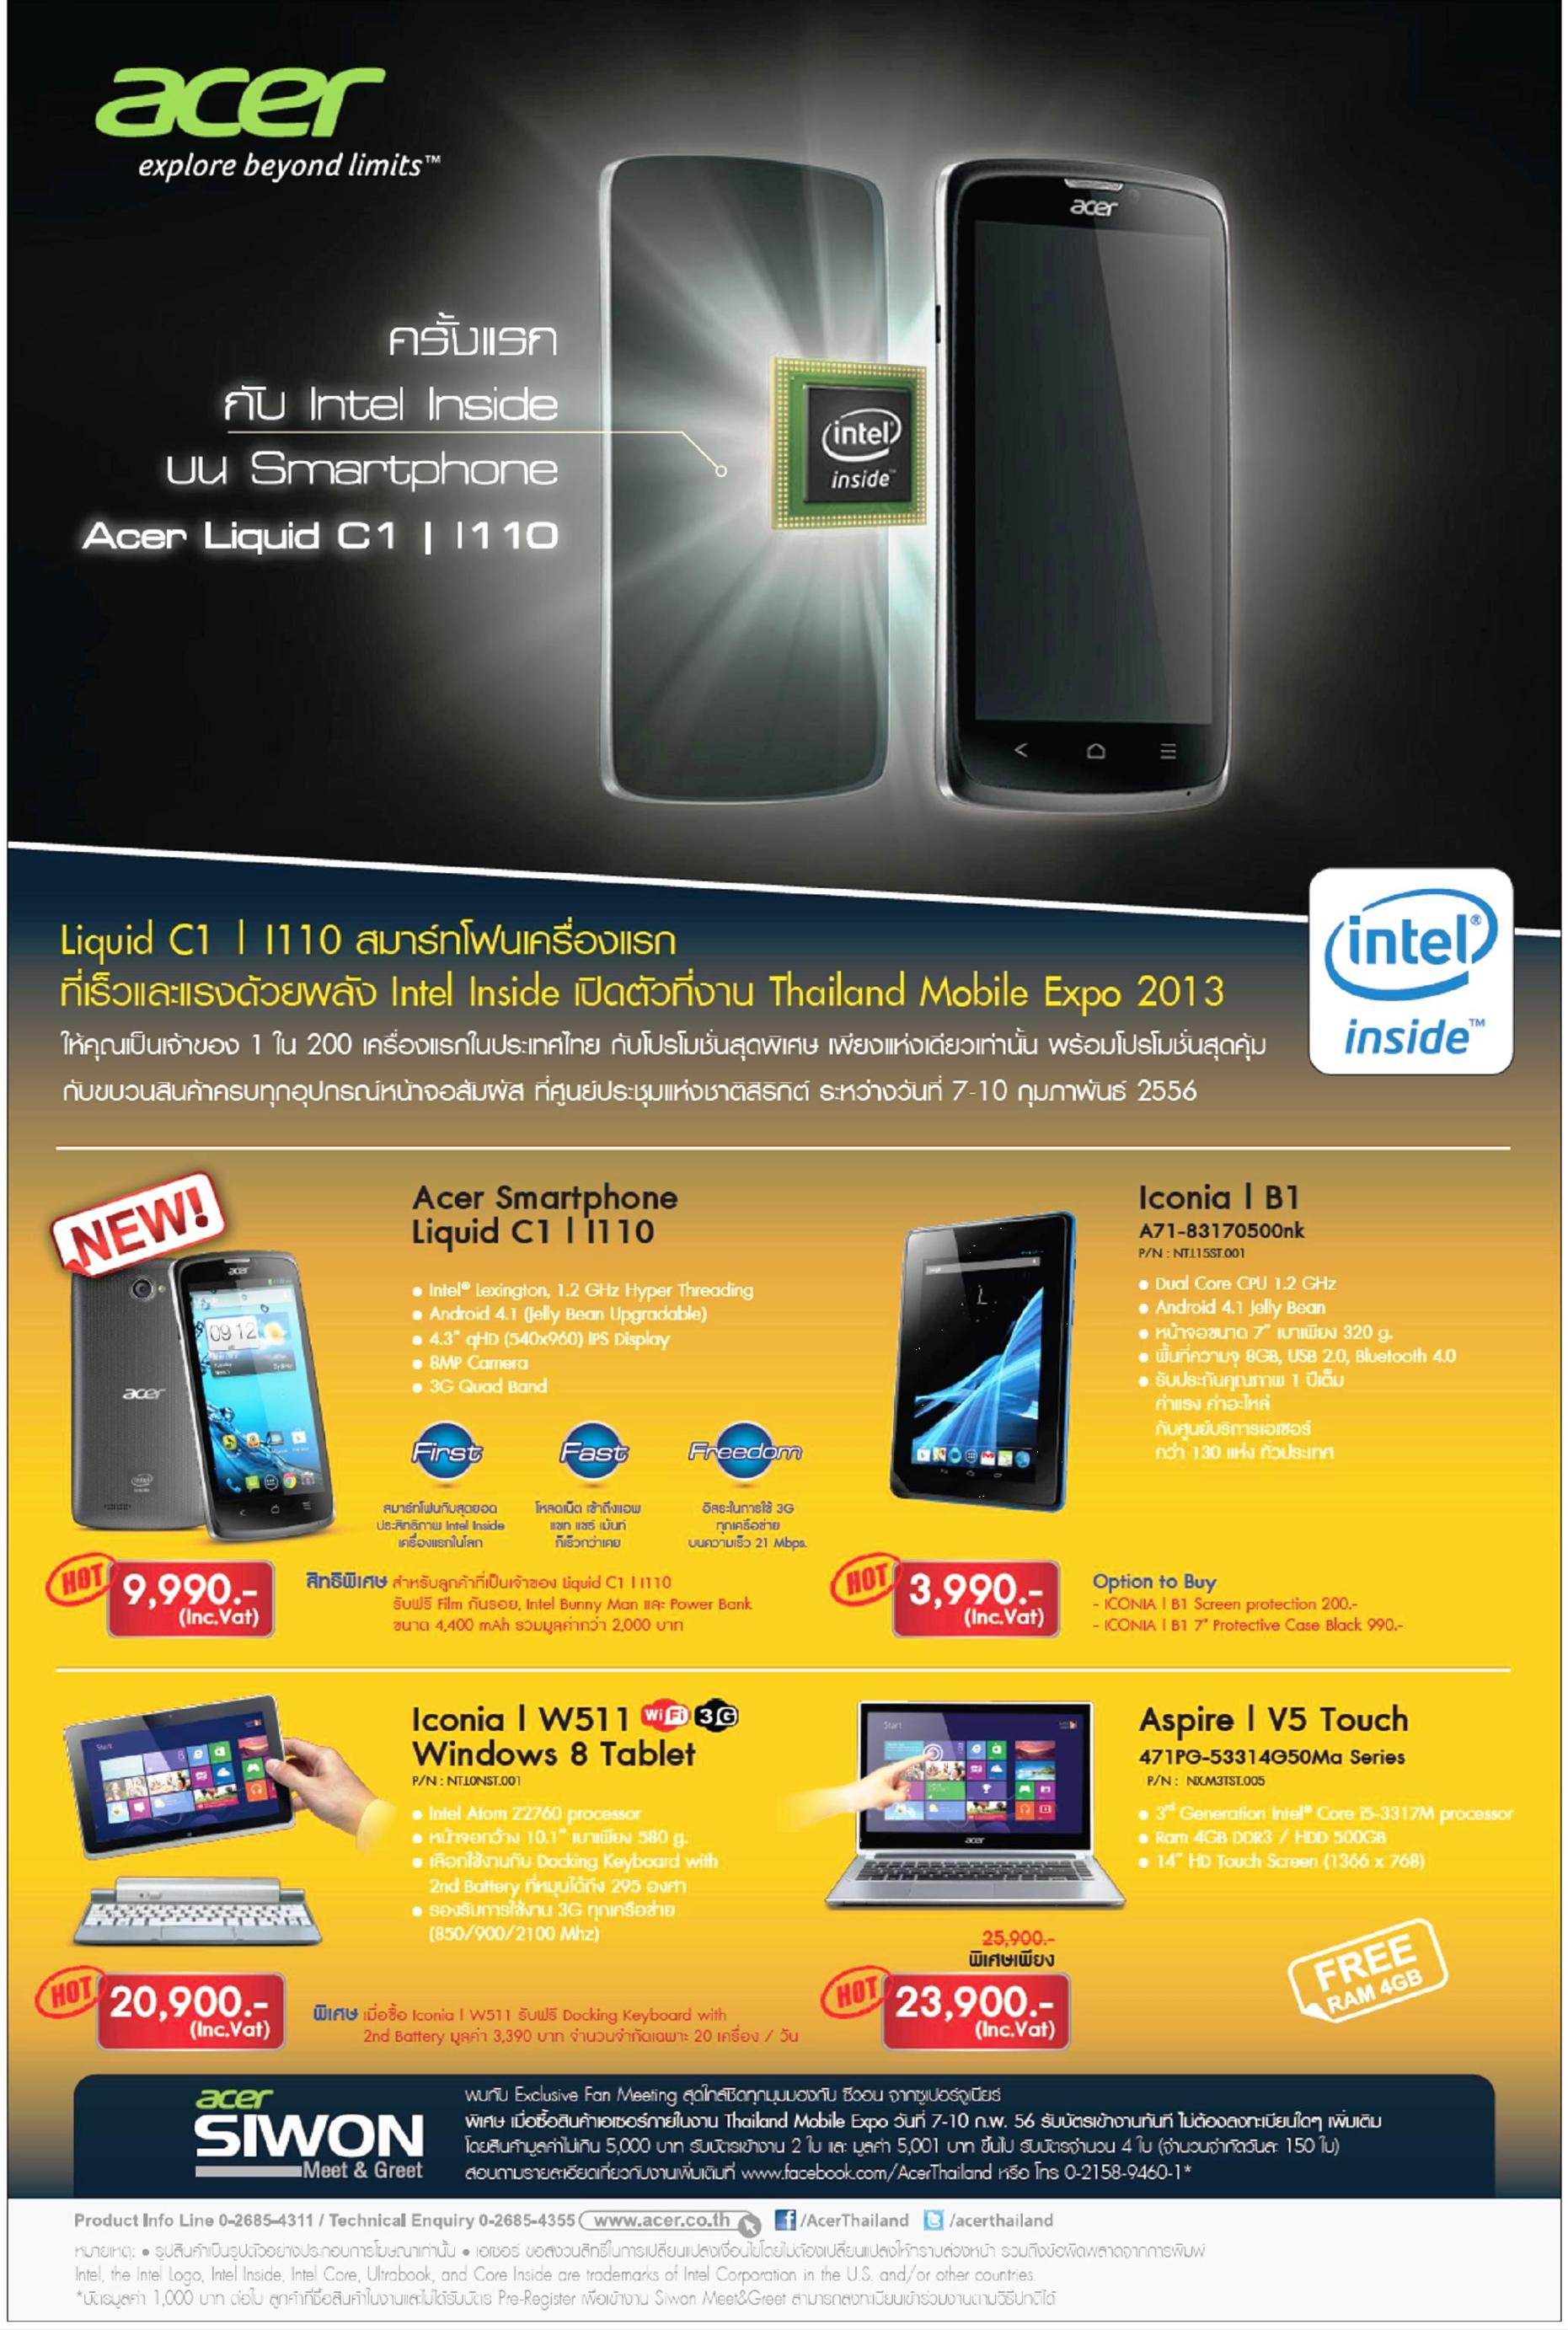 Acer Mobile Expo 2013